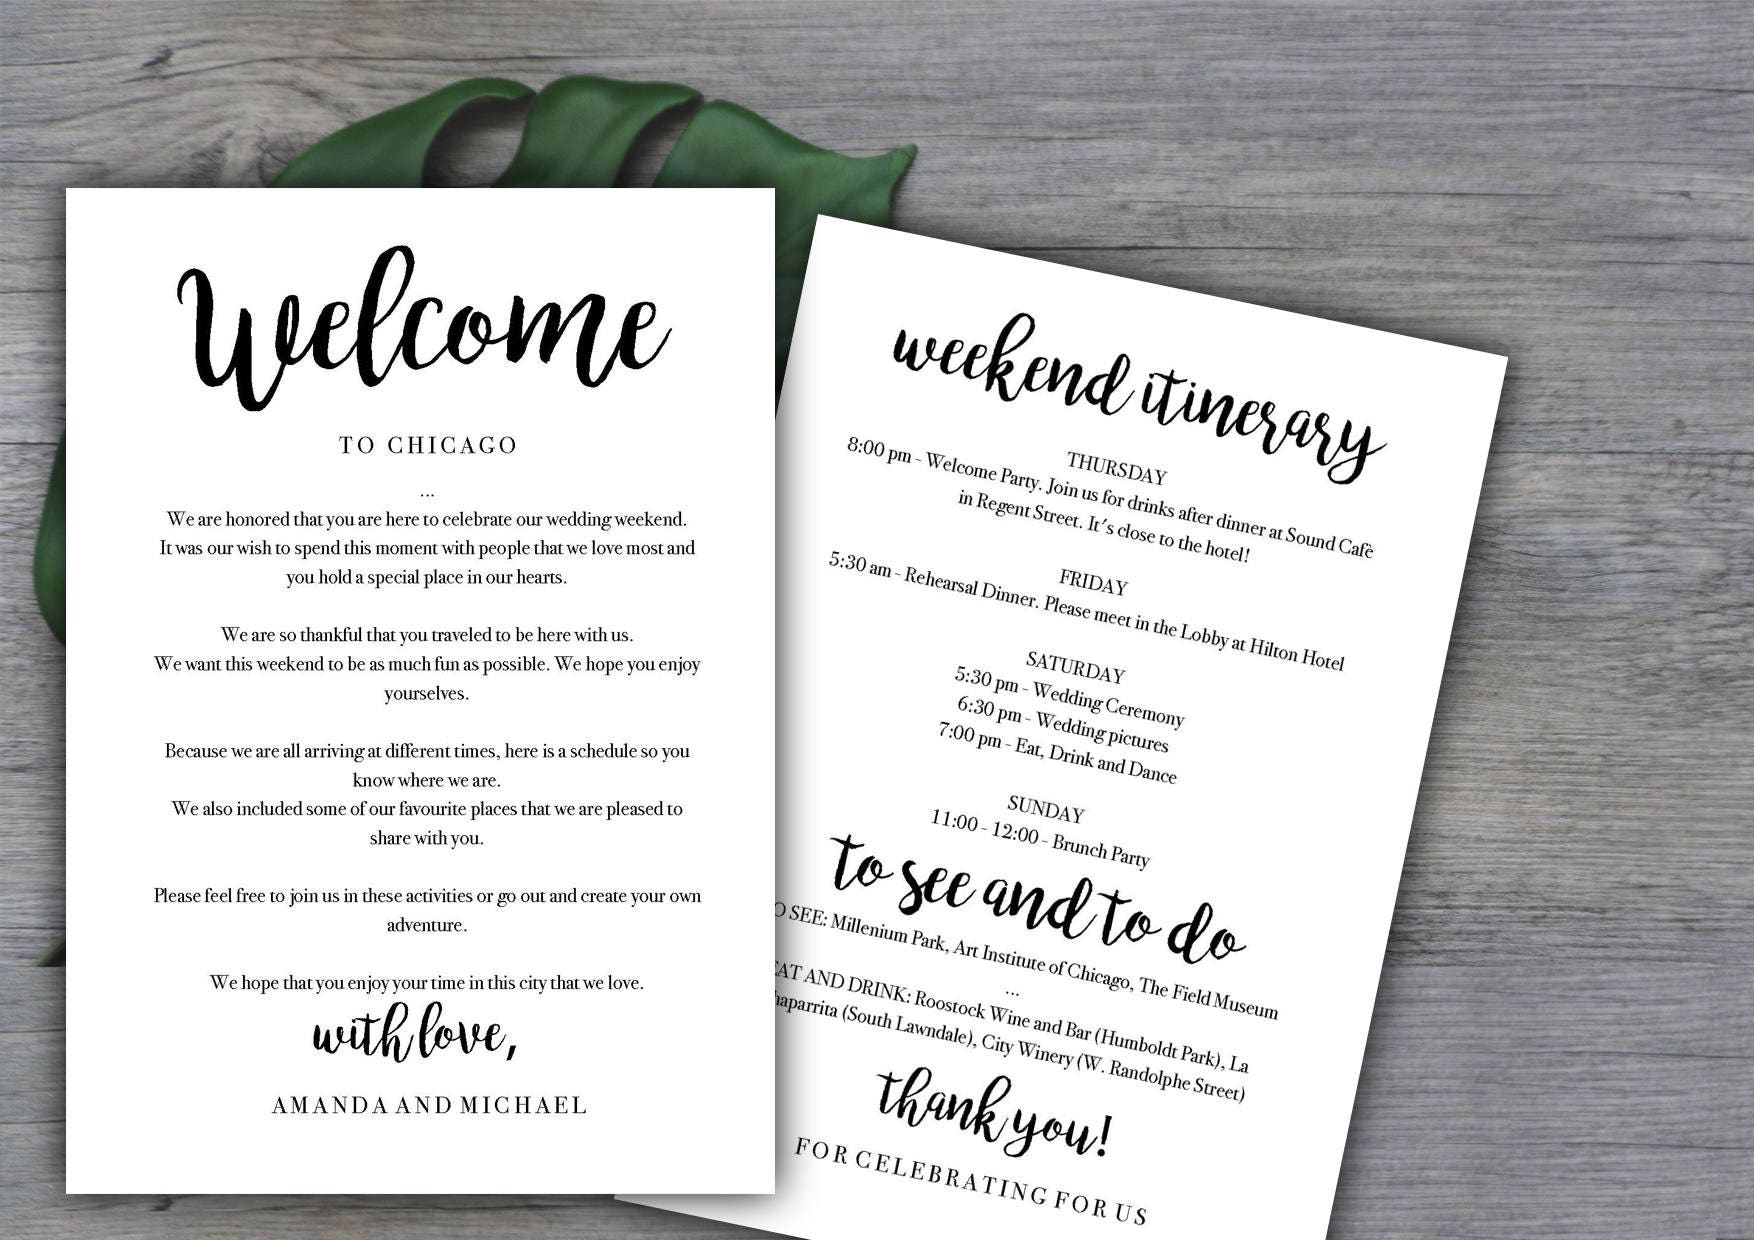 weekend itinerary template destination wedding welcome letter